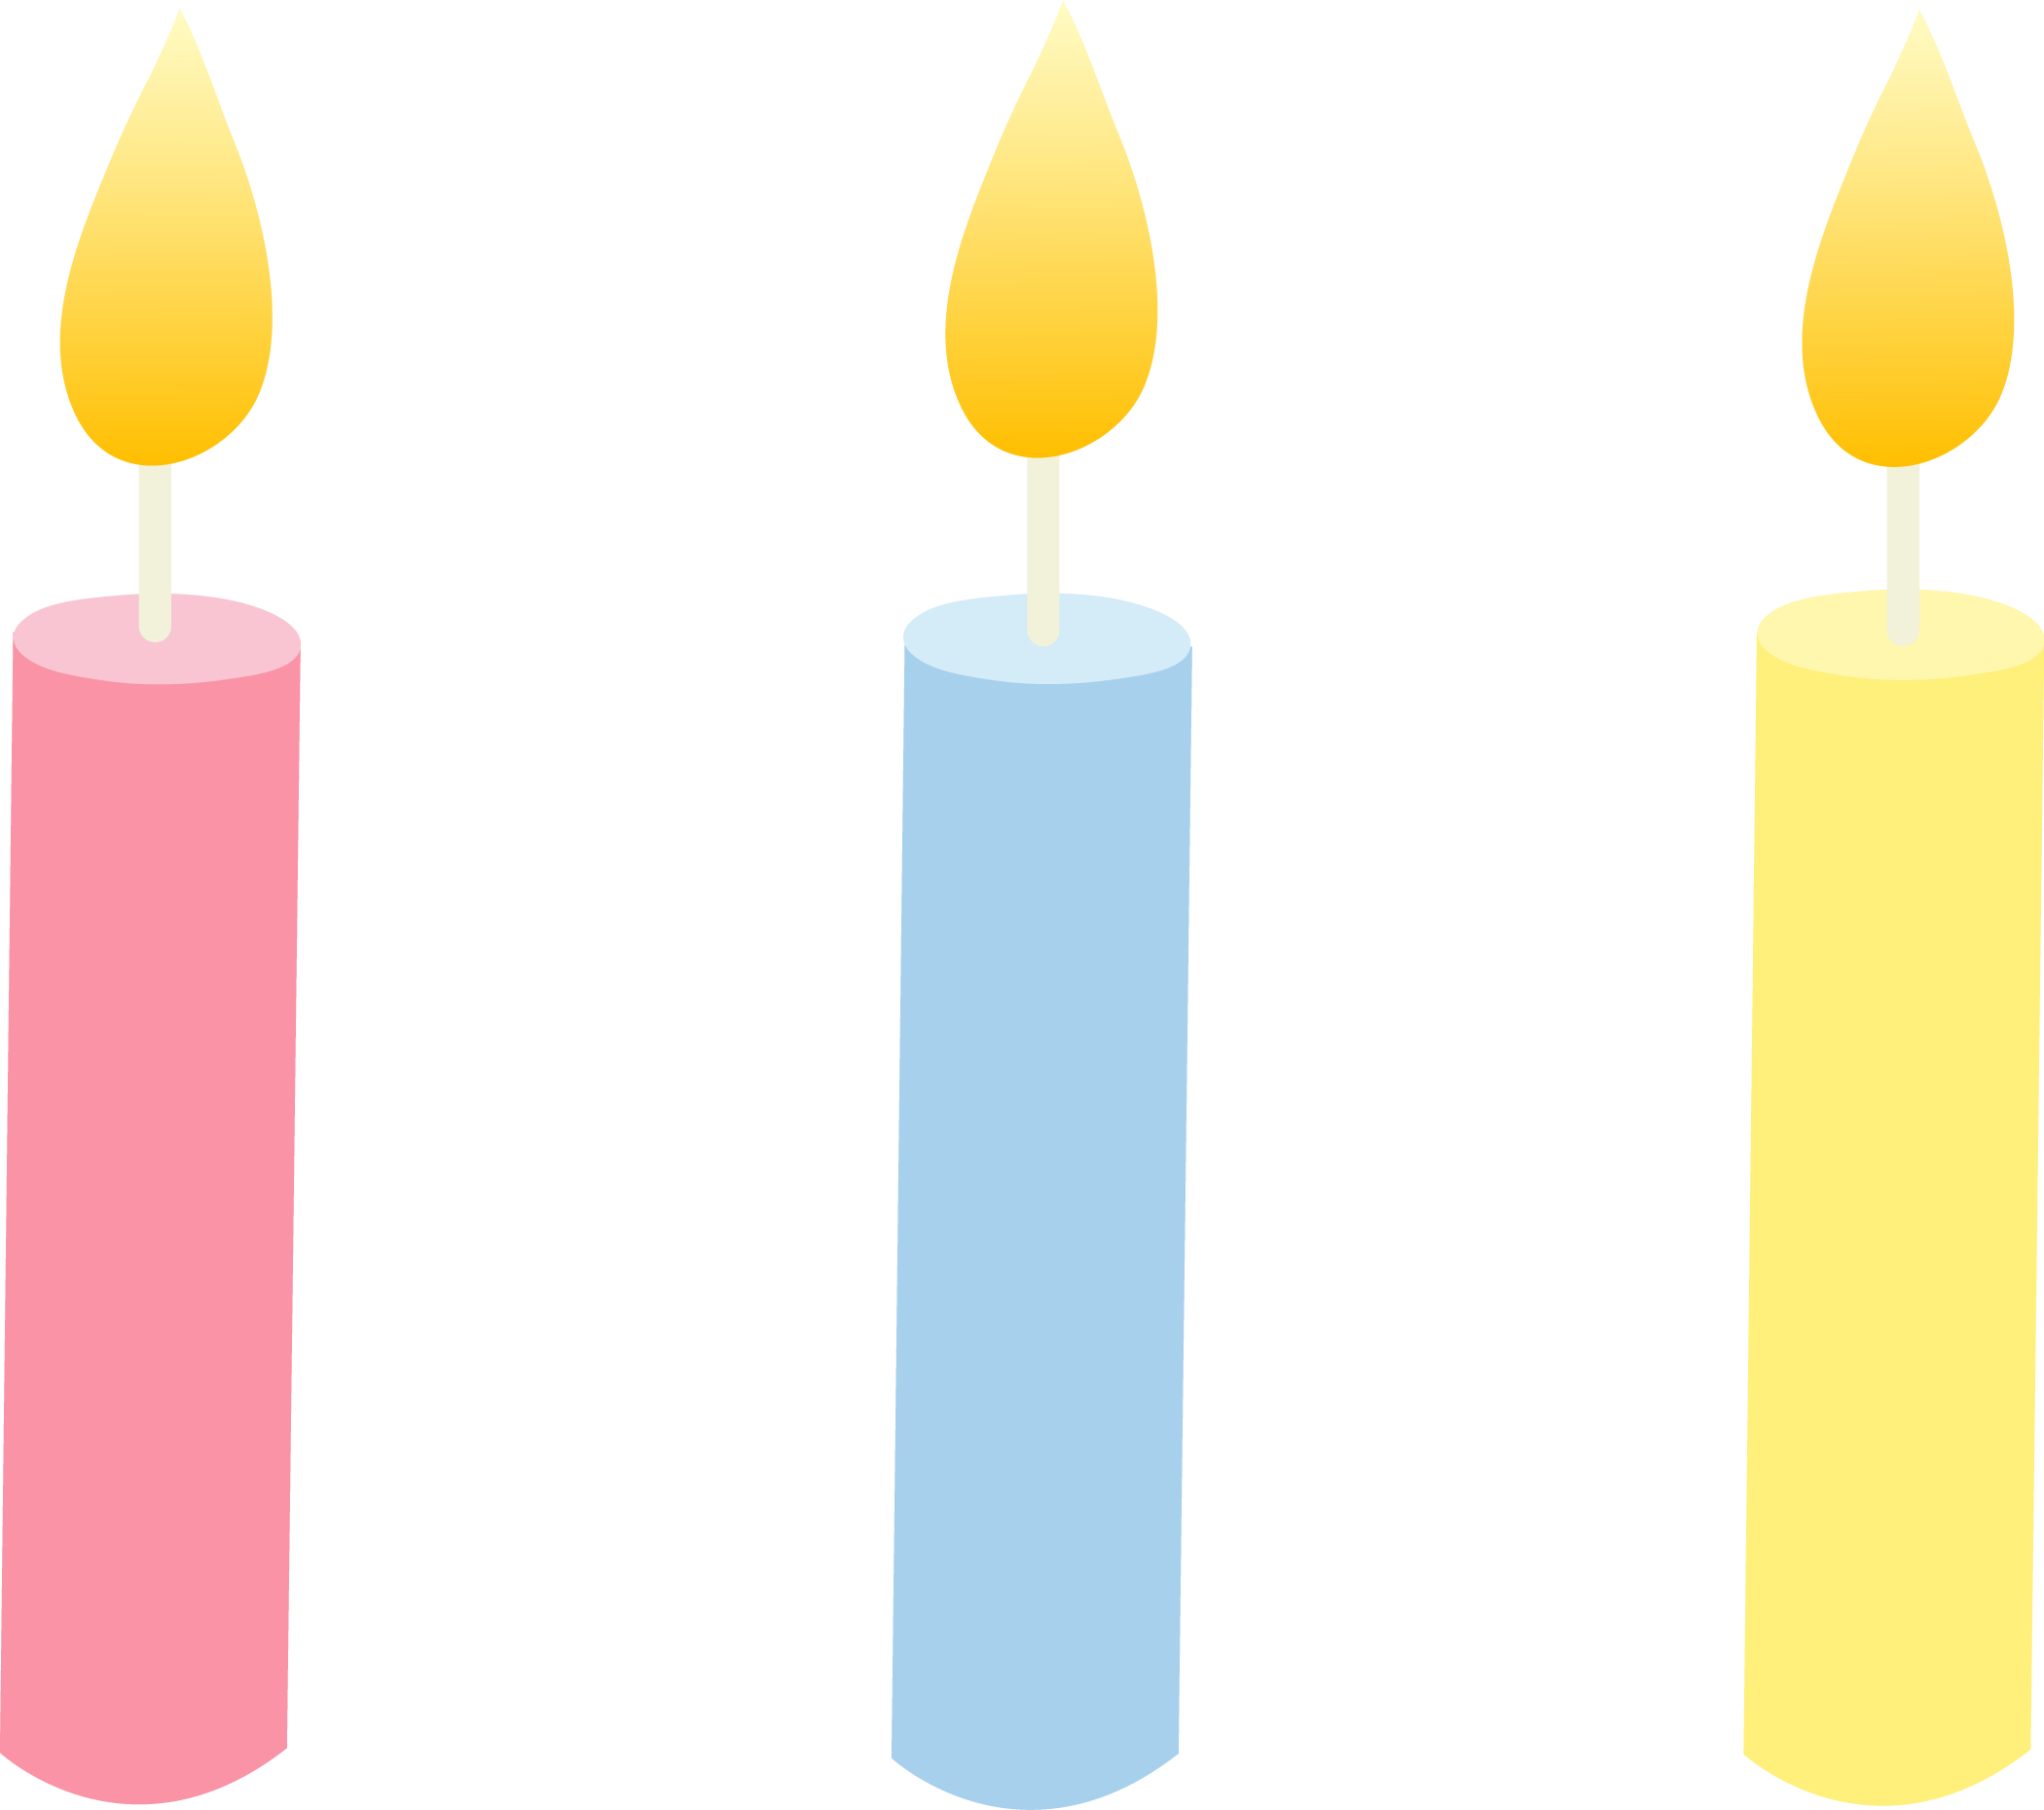 Lit birthday clipart . Drawing candles candle light image transparent download